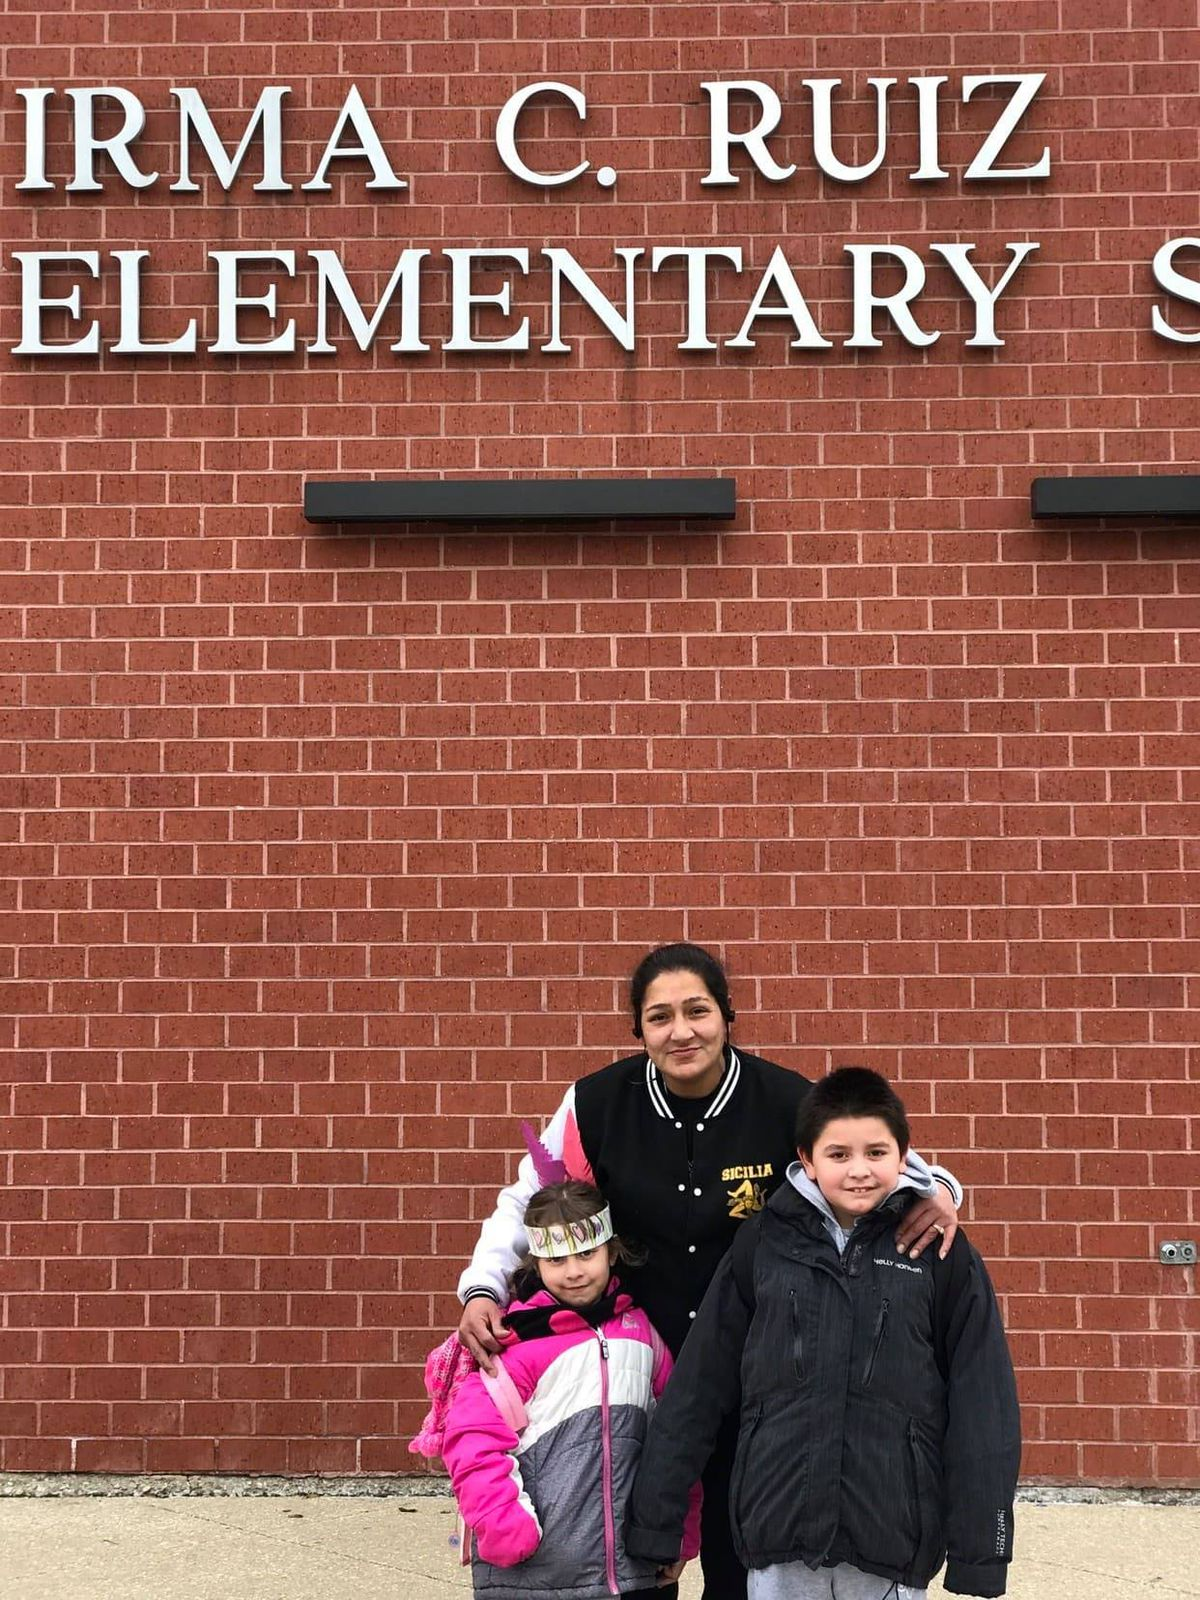 Tania Ibarra (center) and her two grandchildren, Sandra and Frank, outside of Irma C. Ruiz Elementary.